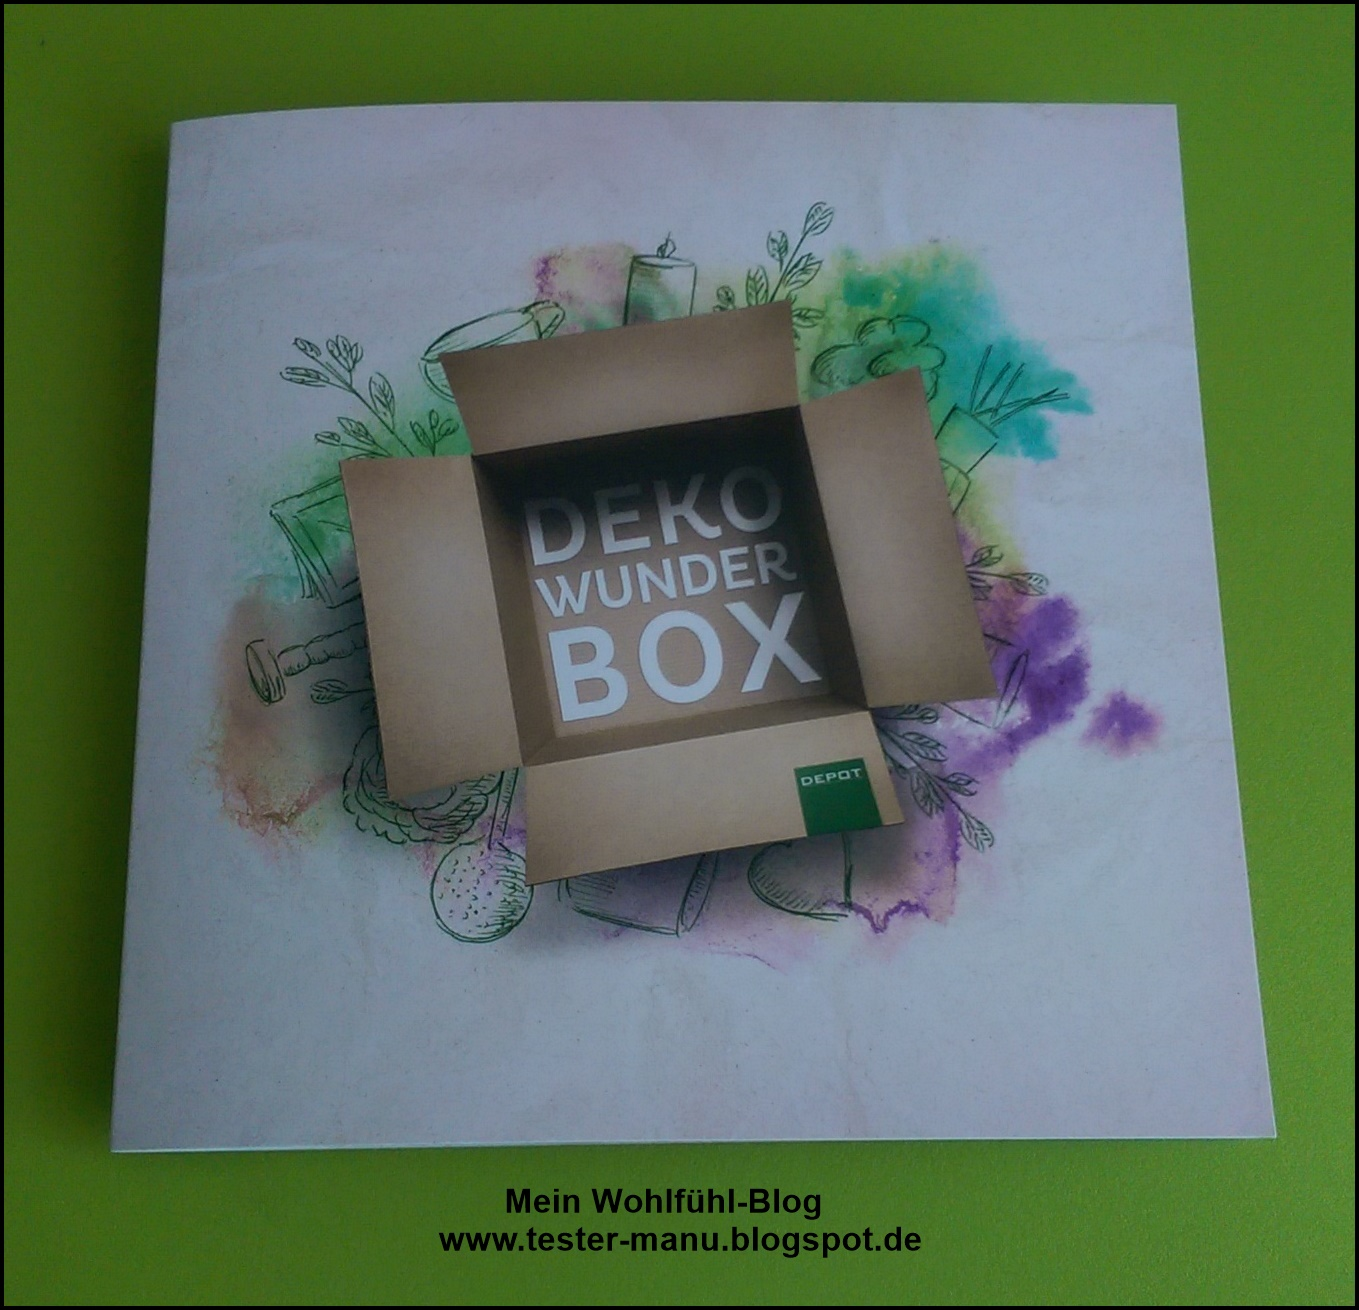 Mein wohlf hl blog depot deko wunder box m rz 2016 for Blog deko